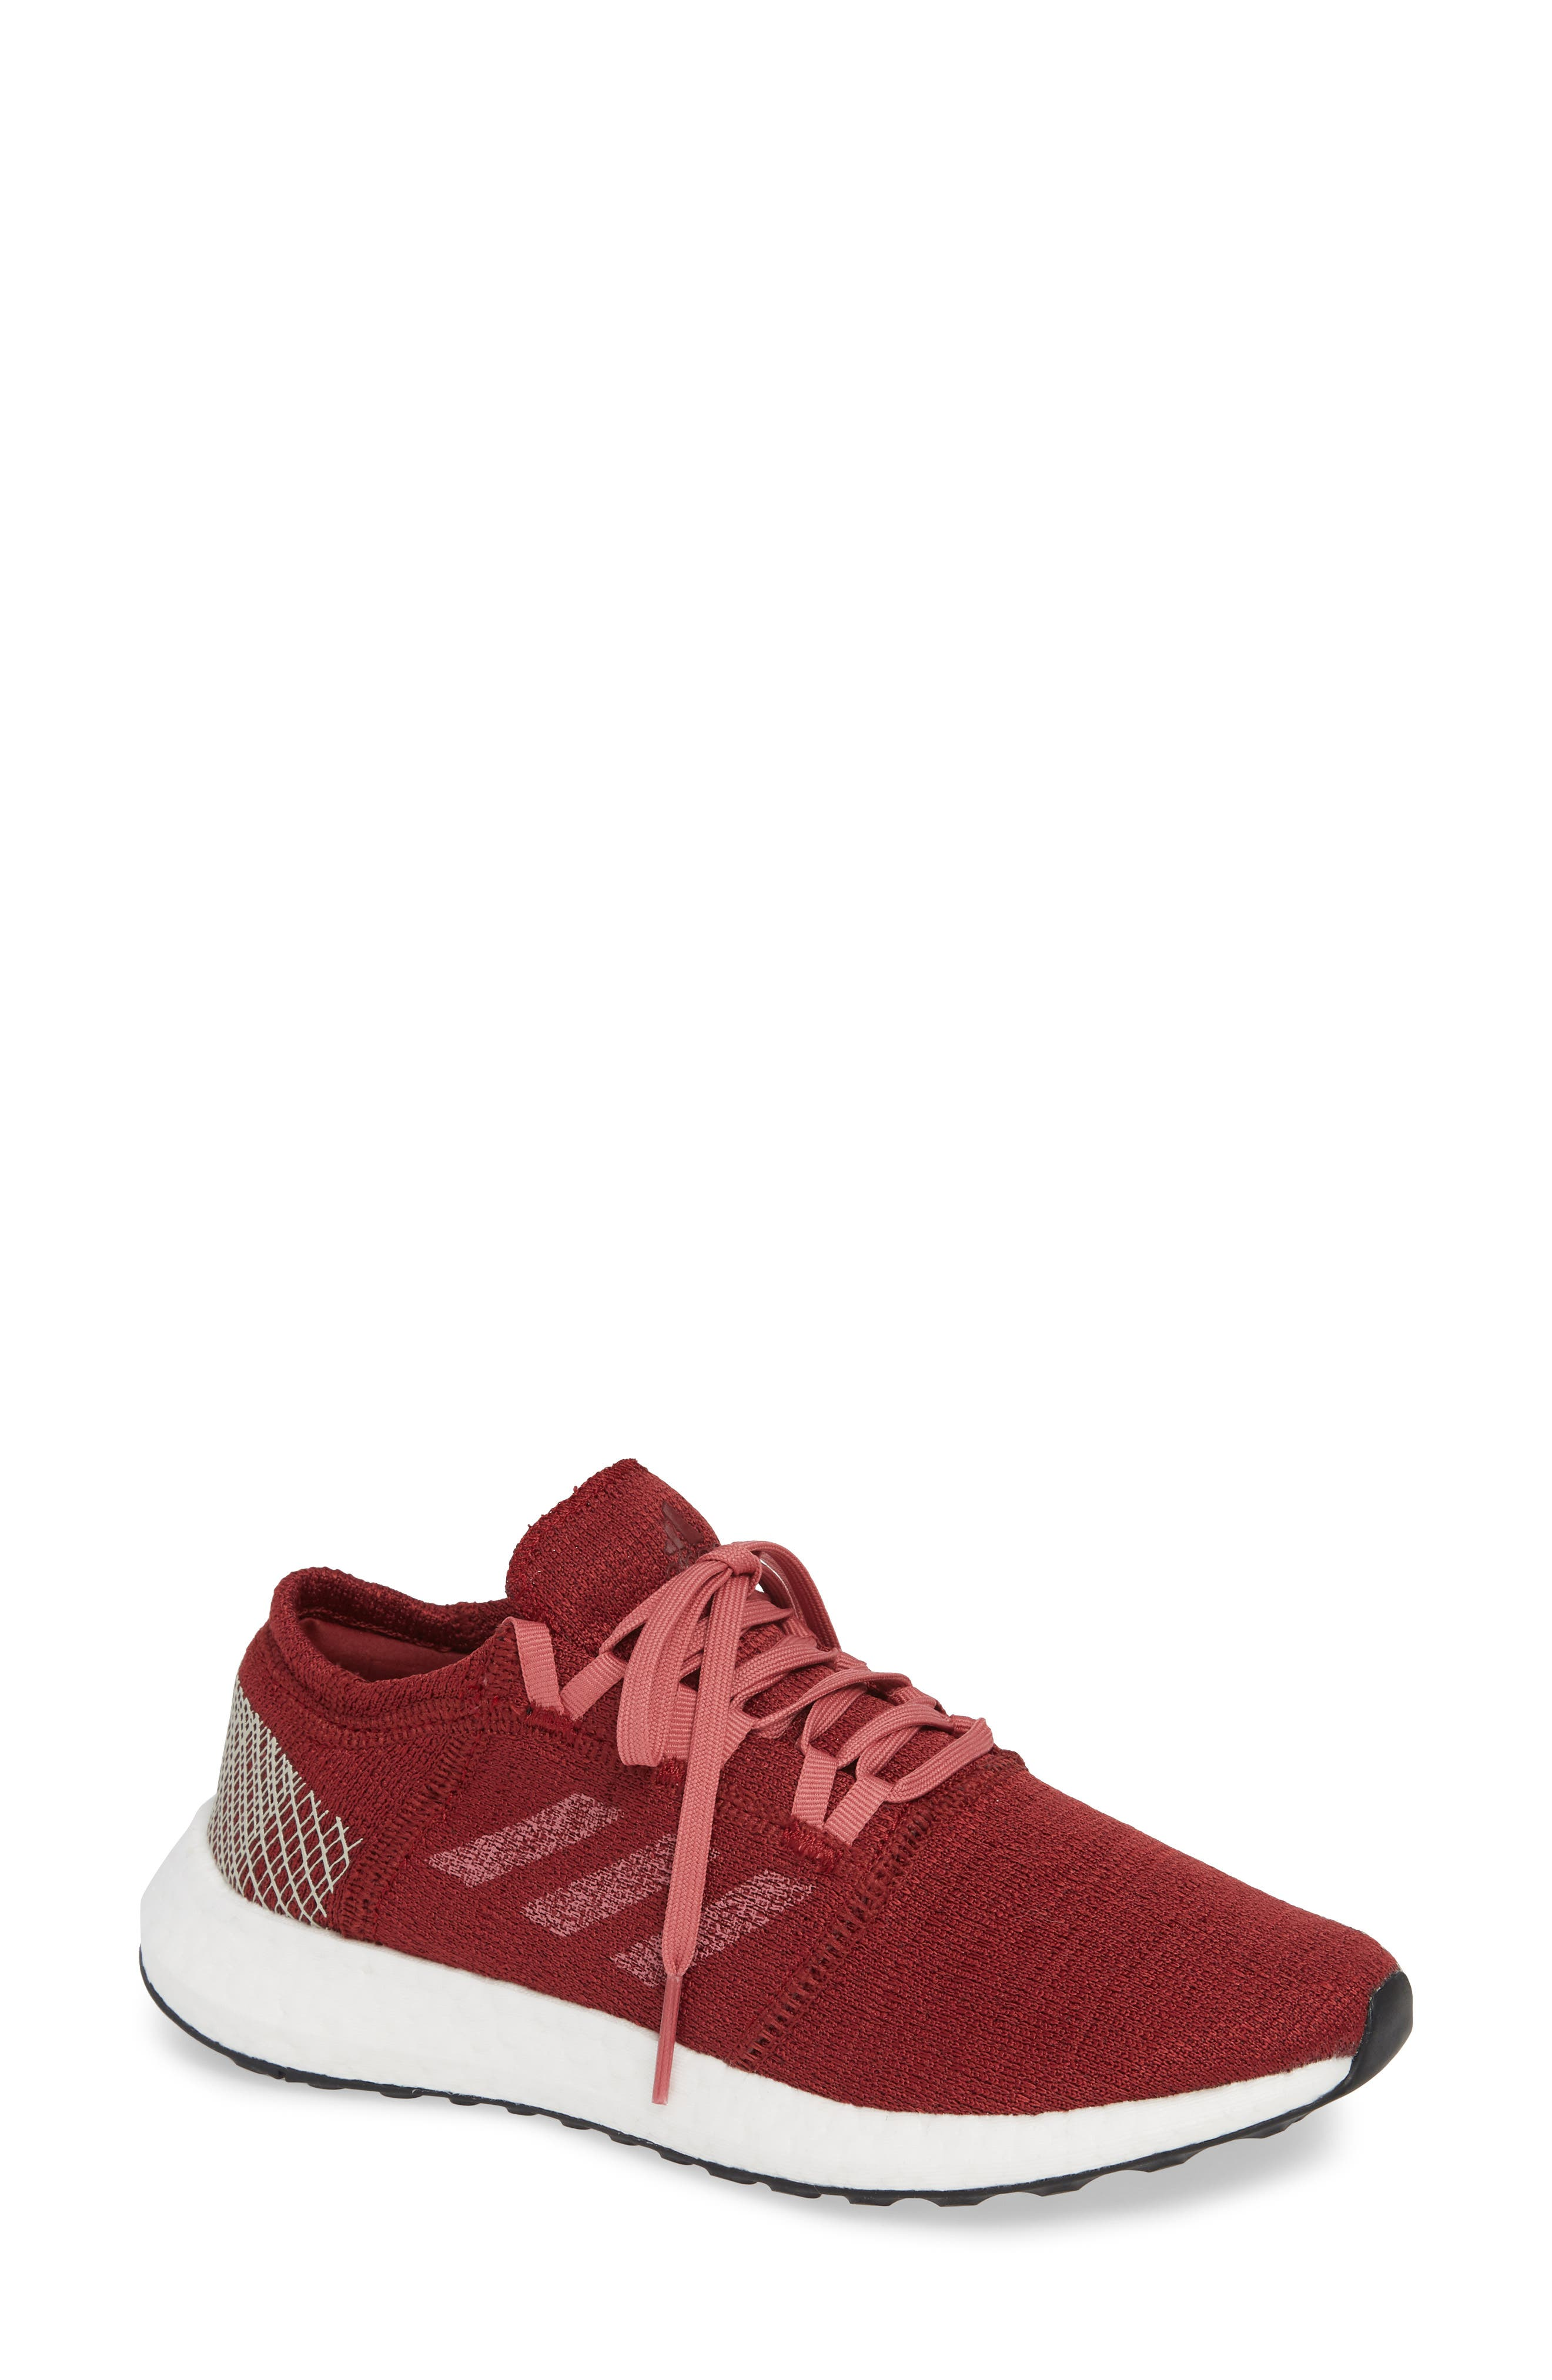 PureBoost X Element Knit Running Shoe,                             Main thumbnail 1, color,                             NOBLE MAROON/ MAROON/ BROWN